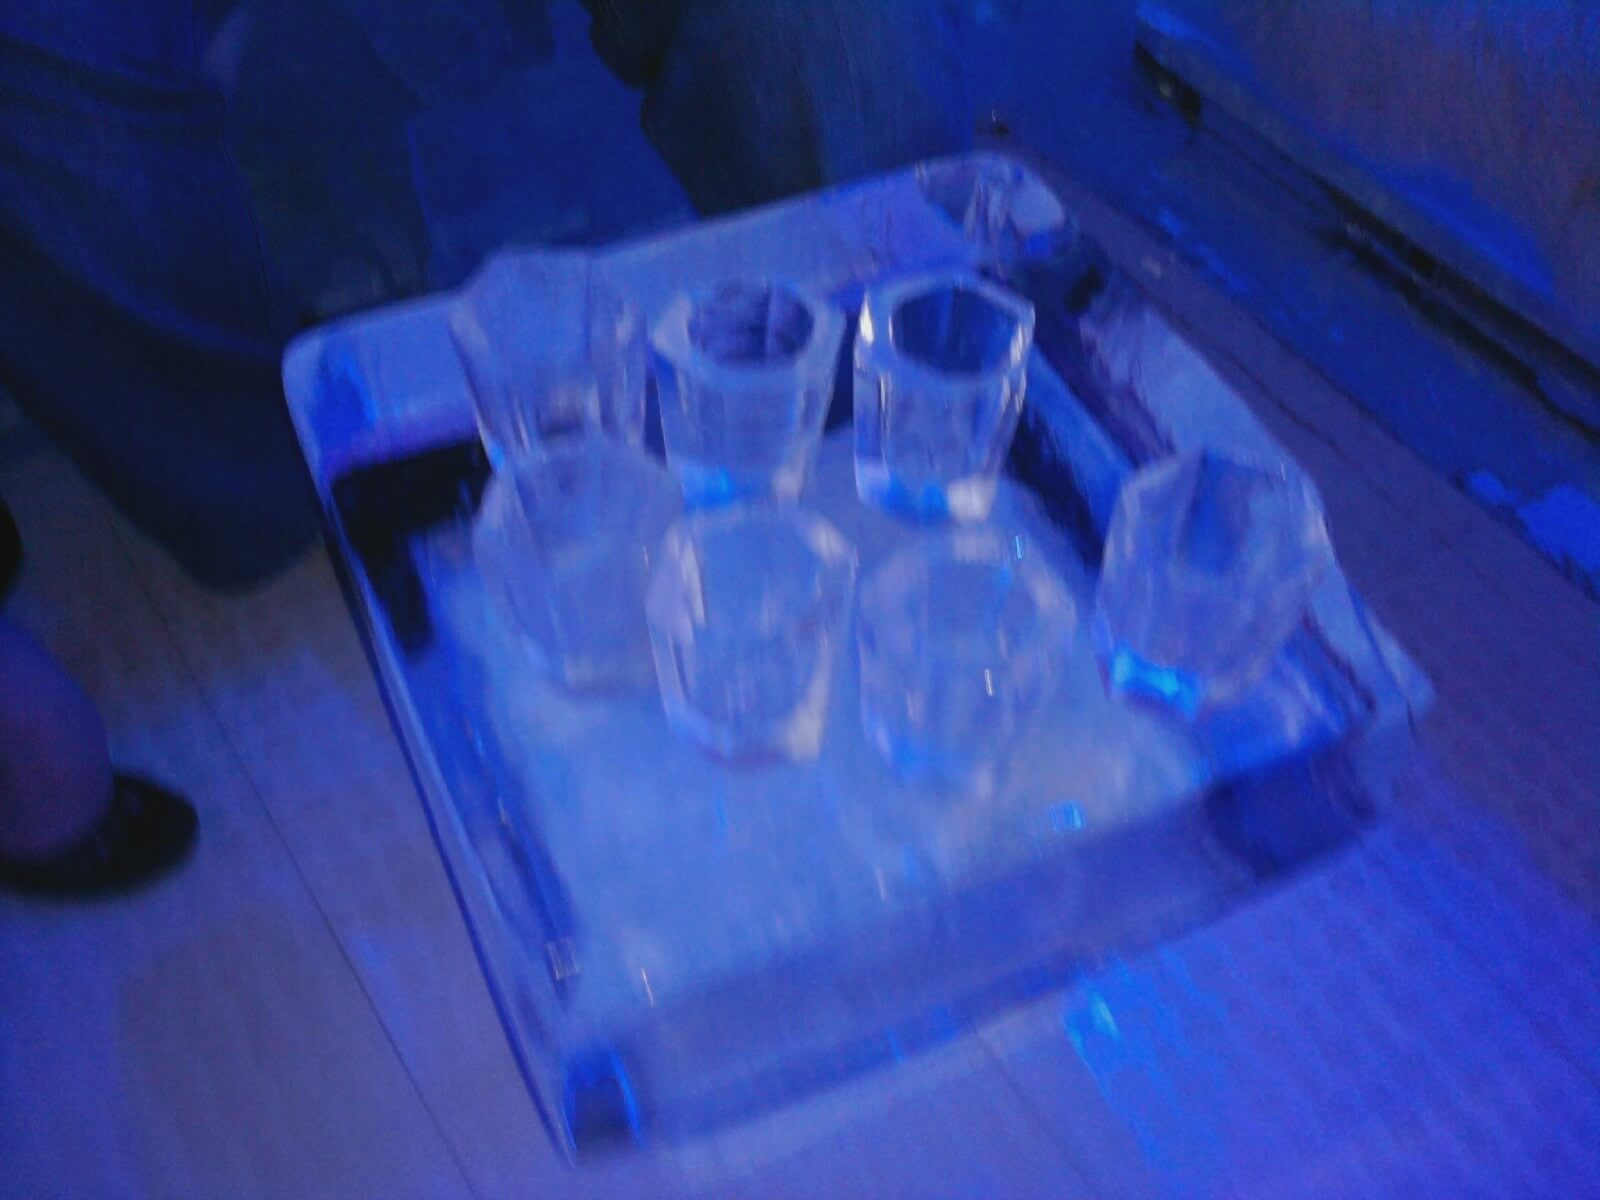 Shot glasses made of hand-carved ice at the Orlando Ice Bar, one of the offbeat Orlando activities that keeps Florida exciting